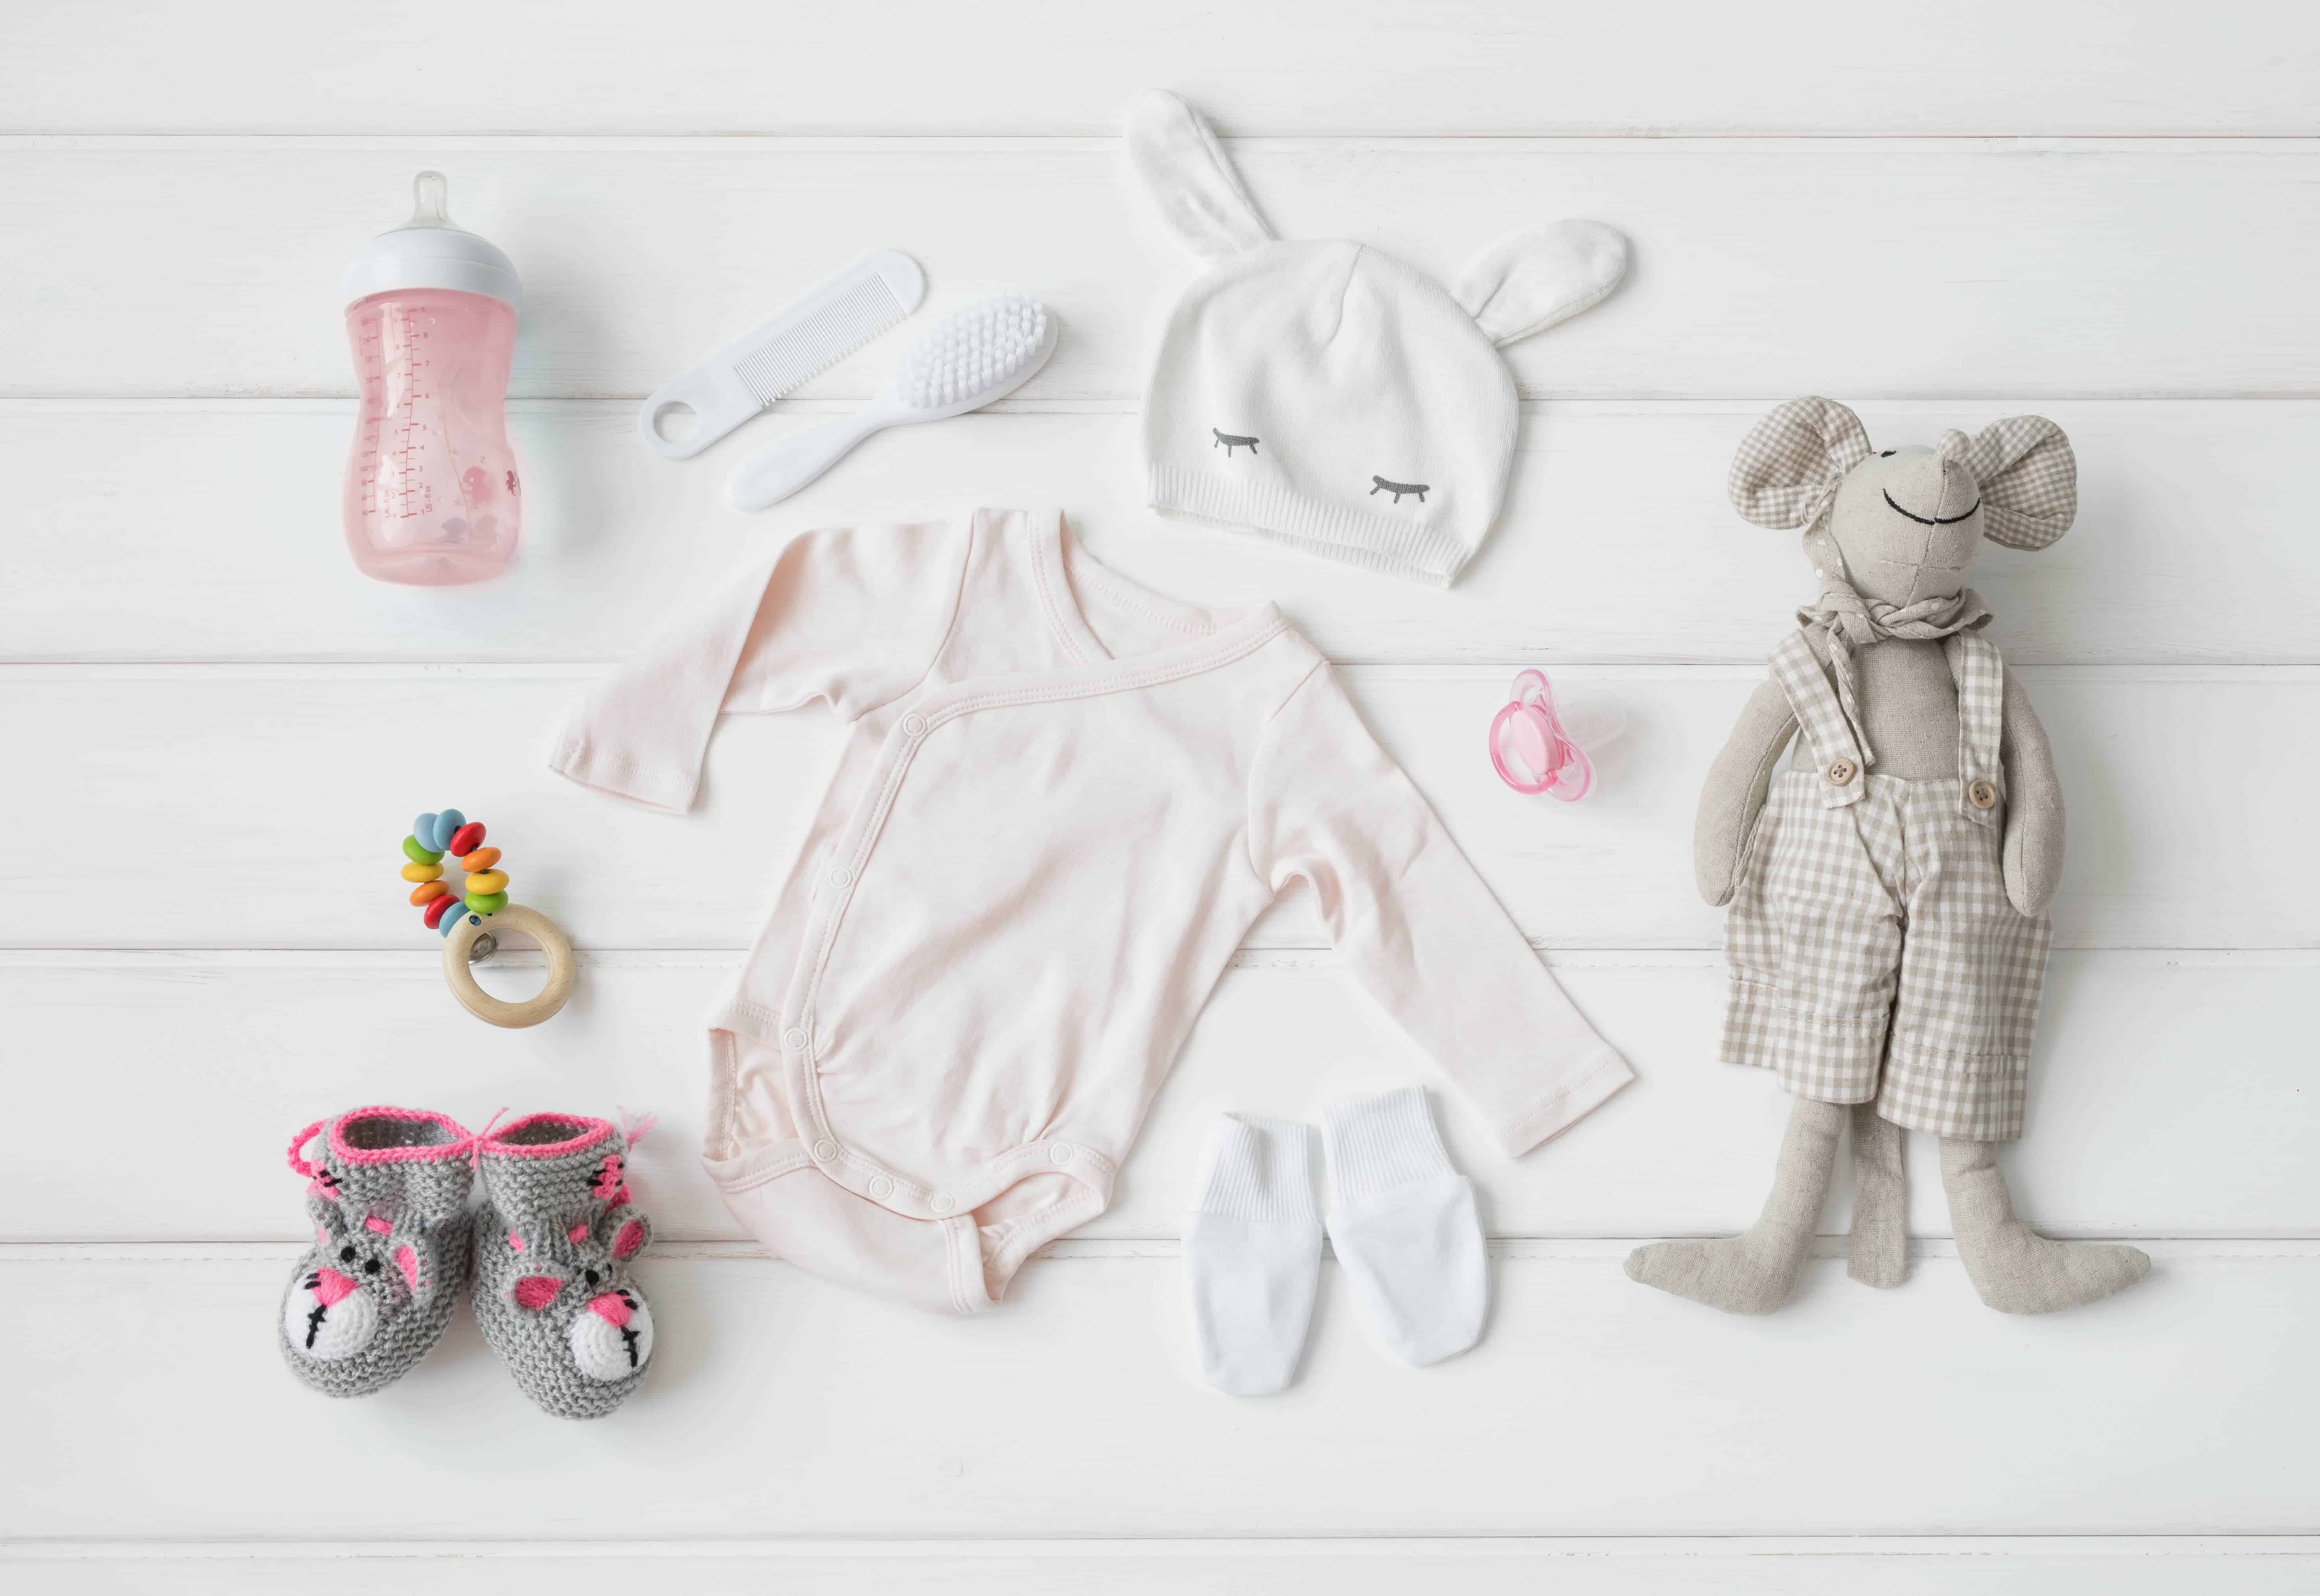 a4e9bd8d4 The Complete Newborn Layette Guide: What Baby Clothes Do You Need?